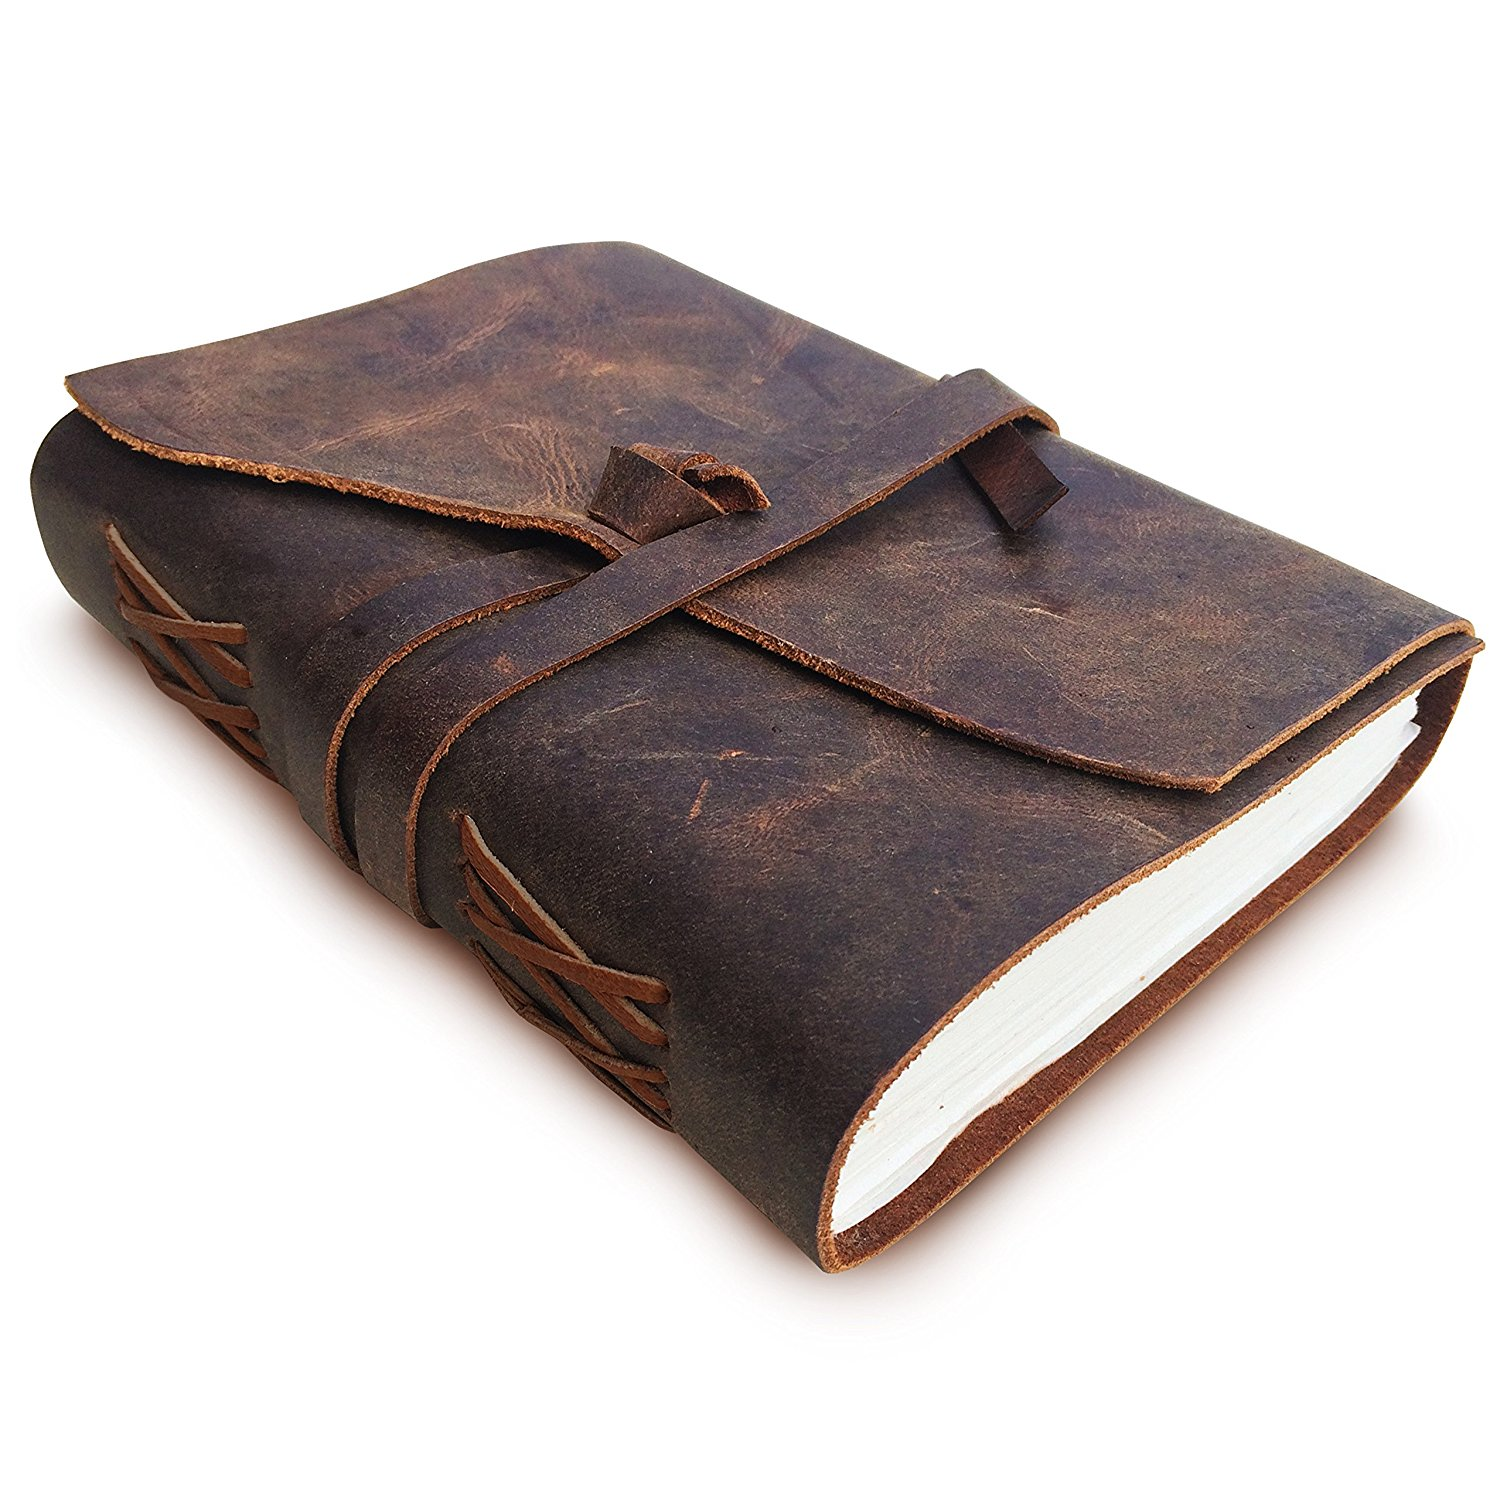 LEATHER JOURNAL Writing Notebook for 3rd wedding anniversary gift